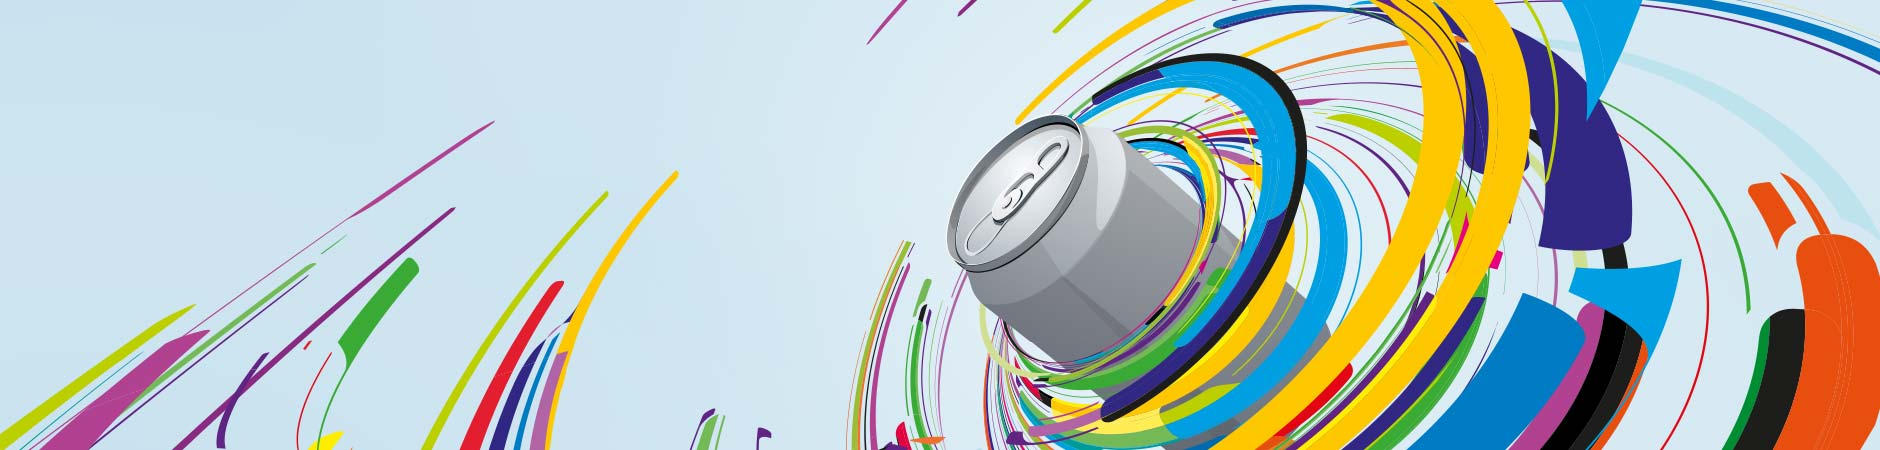 Color printing joliet - Printing Inks And Coatings Suppliers Manufacturers In Il Usa Inx International